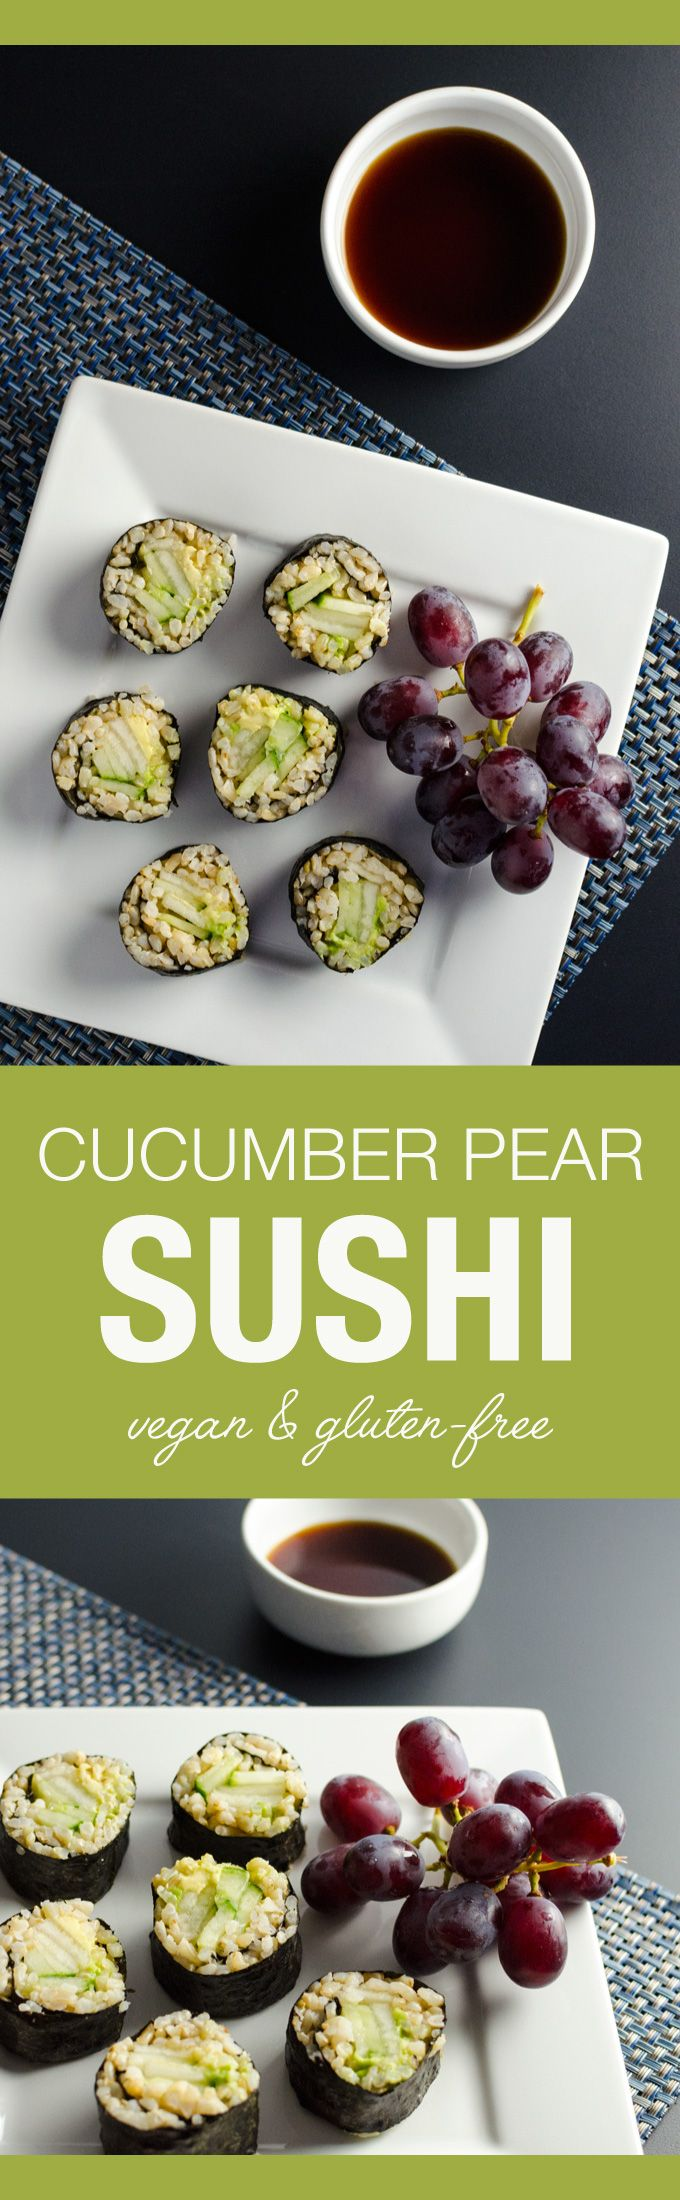 Cucumber Pear Sushi - an easy vegan and gluten-free recipe offering a lovely blend of sweet, fresh and crunchy flavors and textures | VeggiePrimer.com